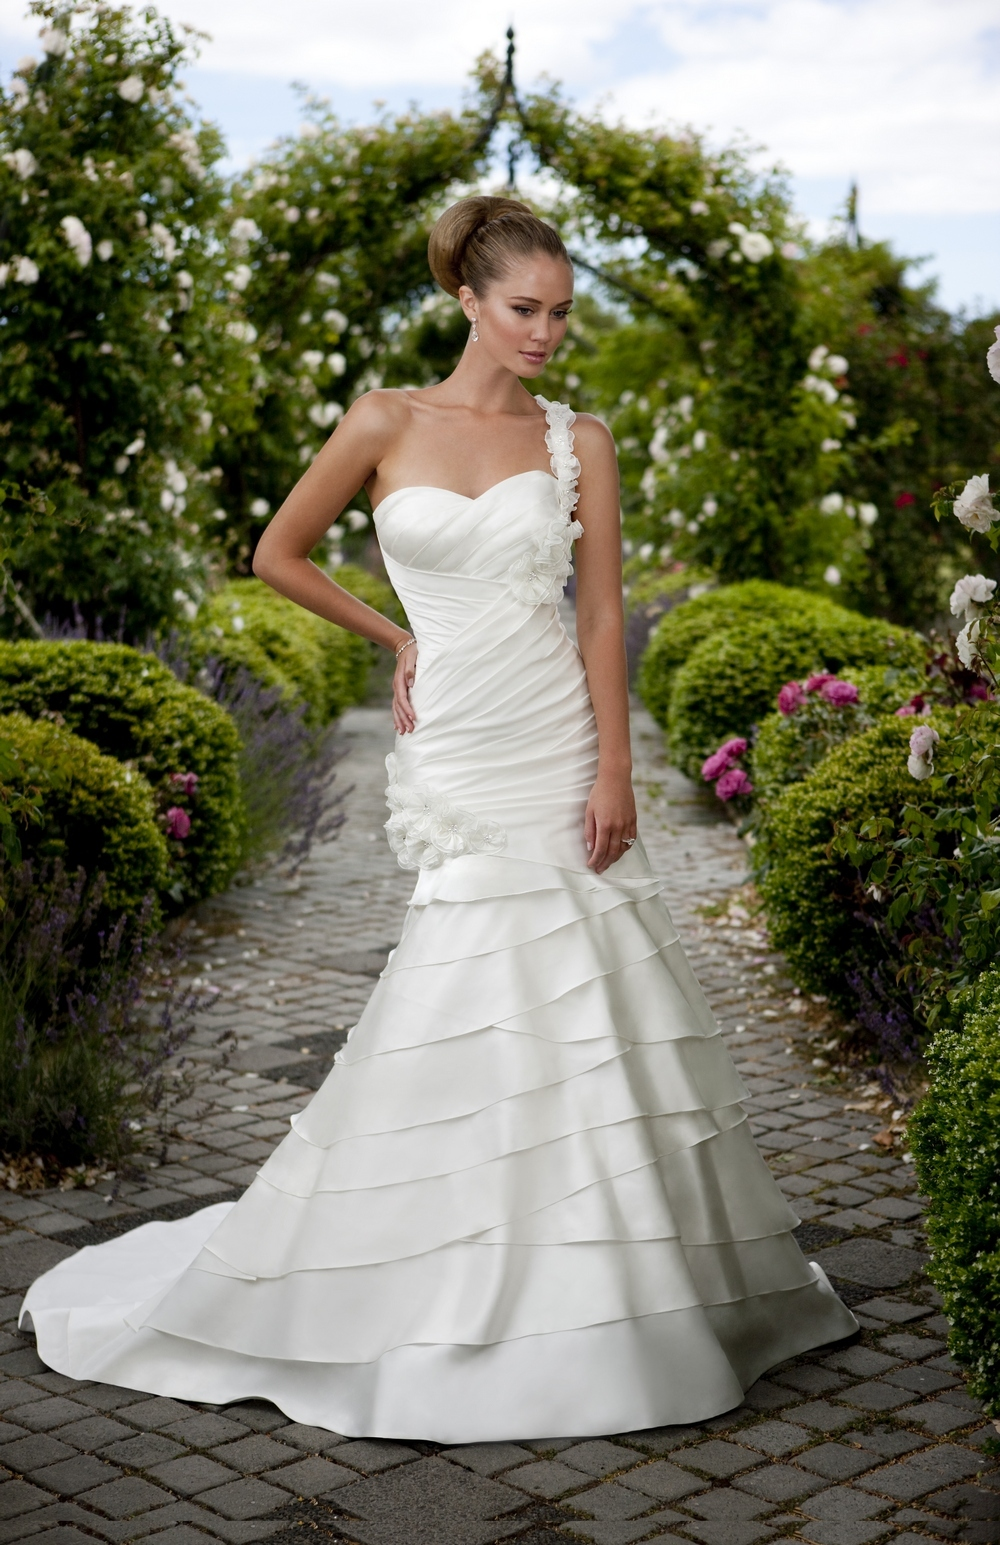 Essense-of-australia-wedding-dresses-2010-2011-d1101.full